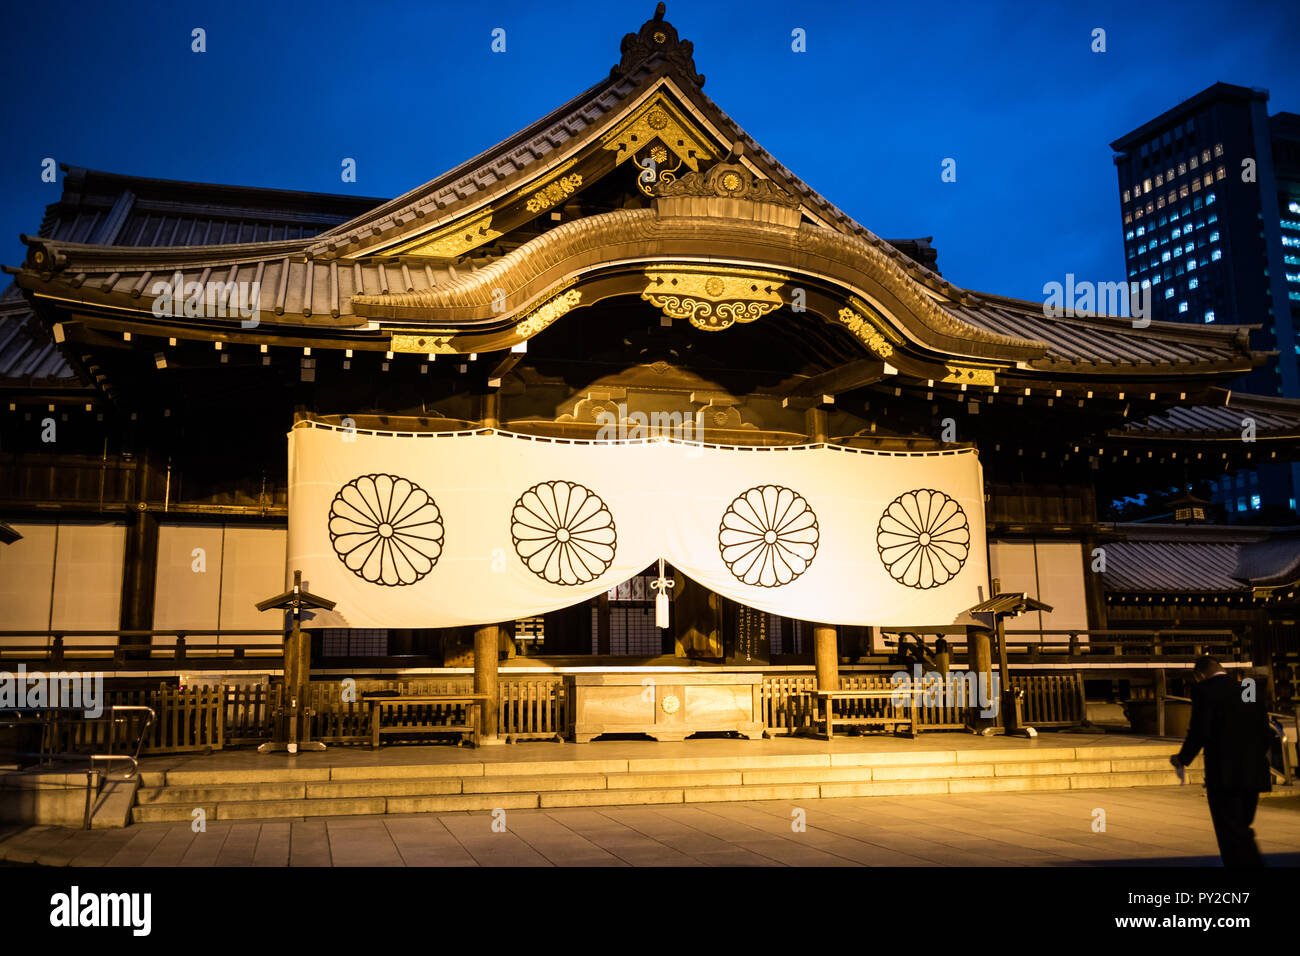 Tokyo, Japan - 10/13/2016: The controversial Yasukuni shrine, taken at night. This temple honours all those who fought in wars for Japan. Stock Photo